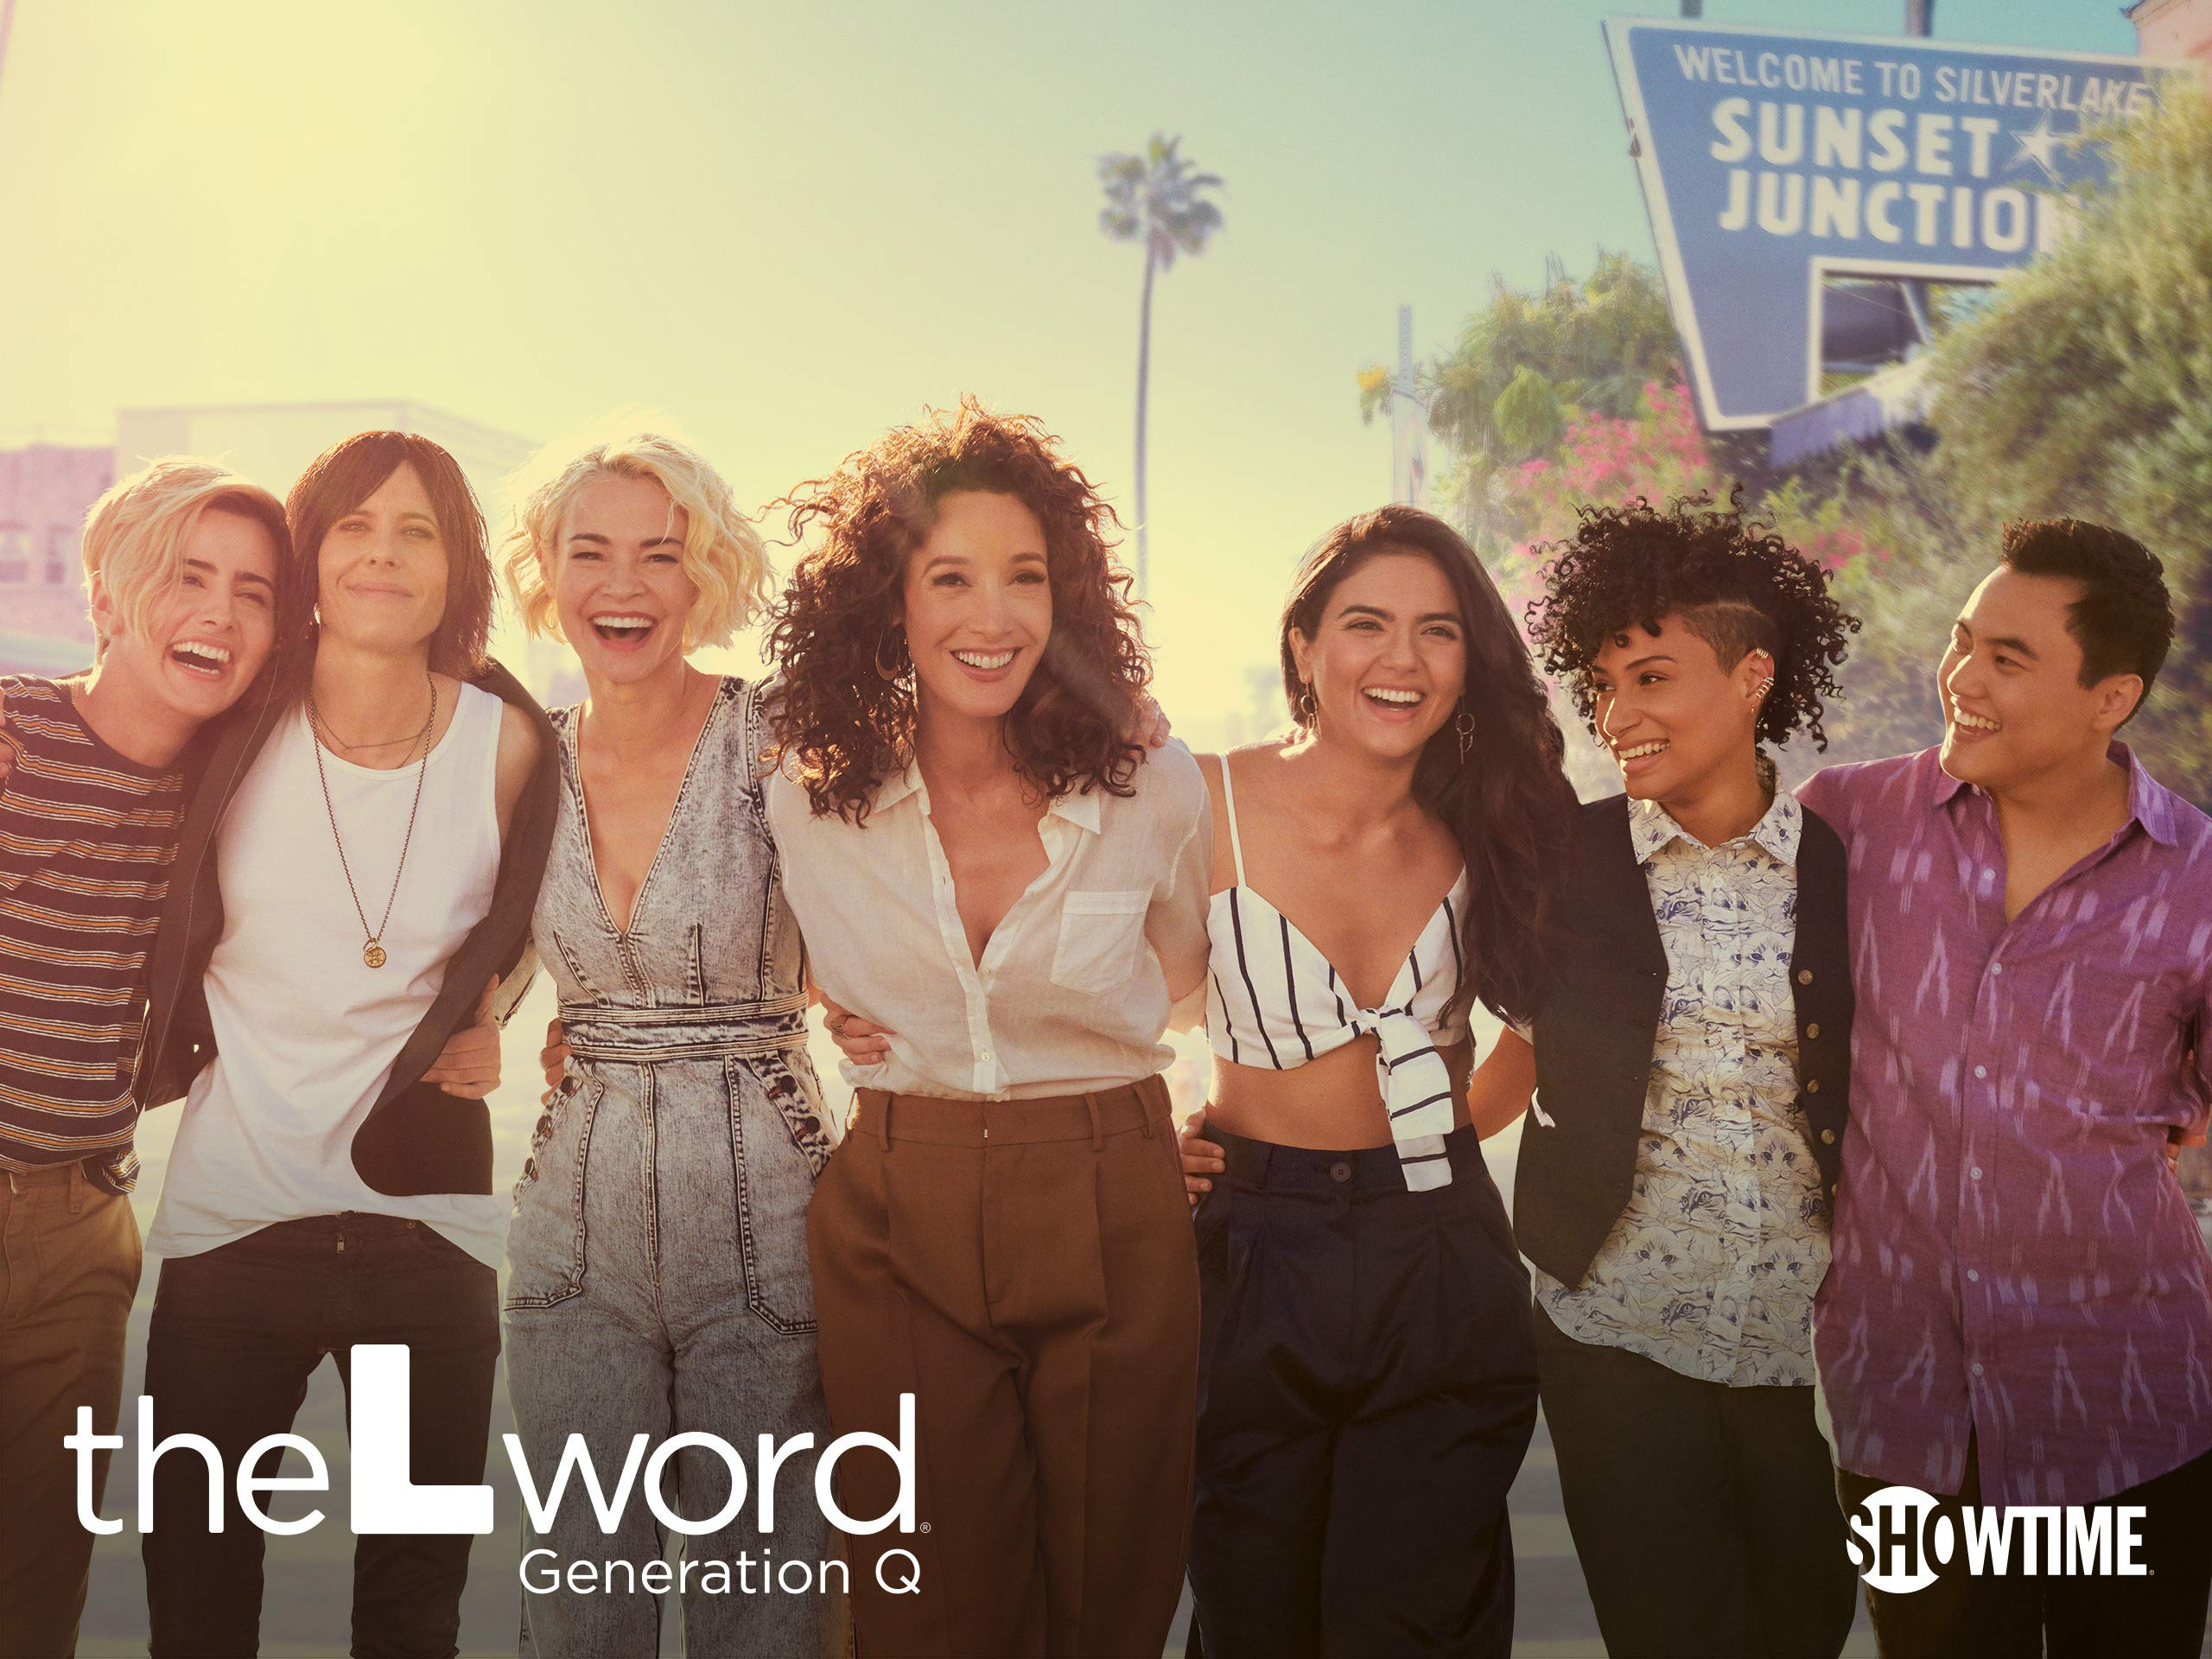 Showtime Is Back With The L Word: Generation Q!